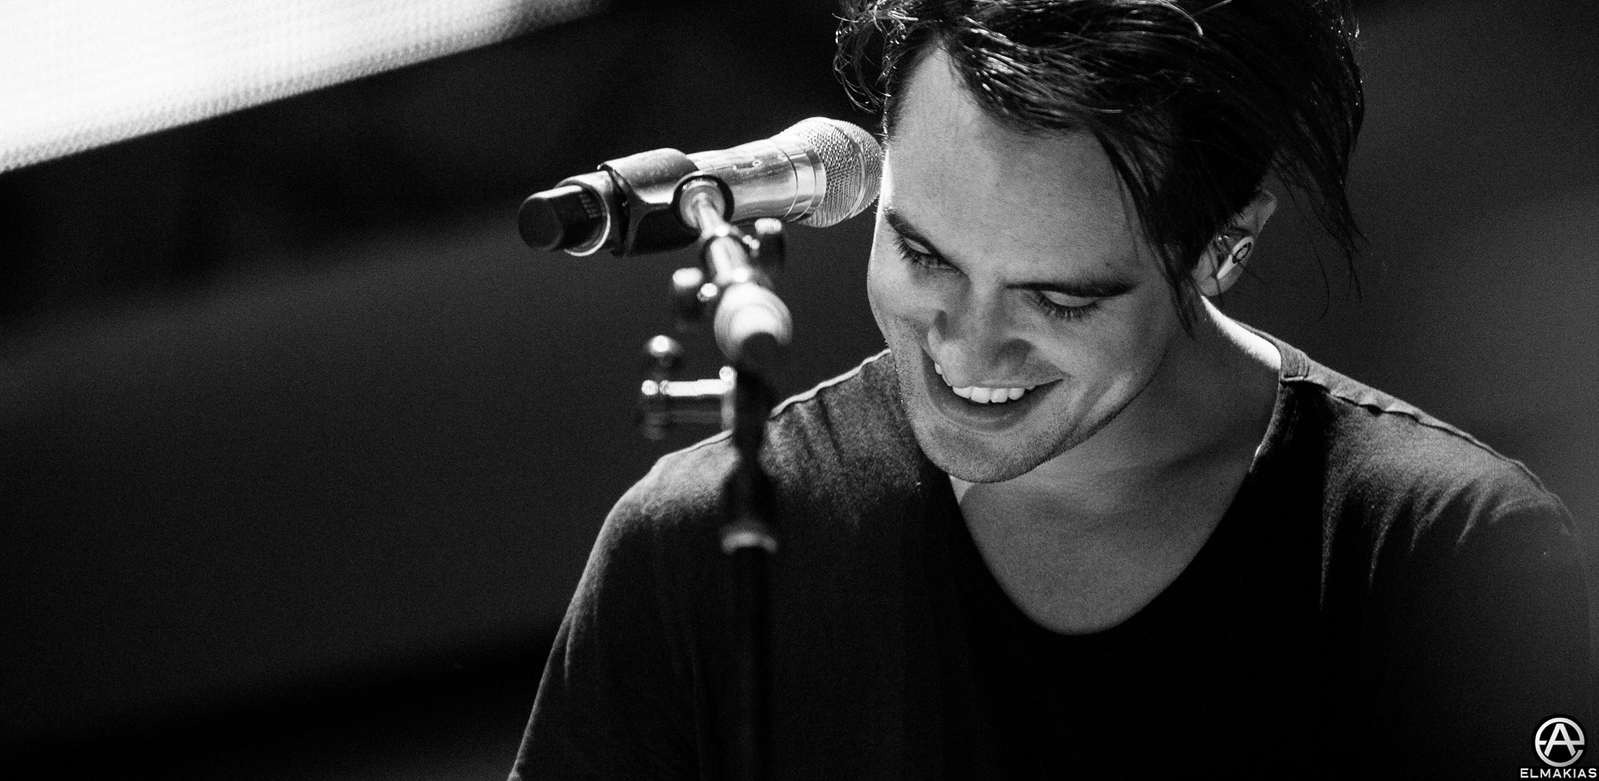 photo of Brendon Urie of Panic! At The Disco at KROQ Weenie Roast 2015 by Adam Elmakias